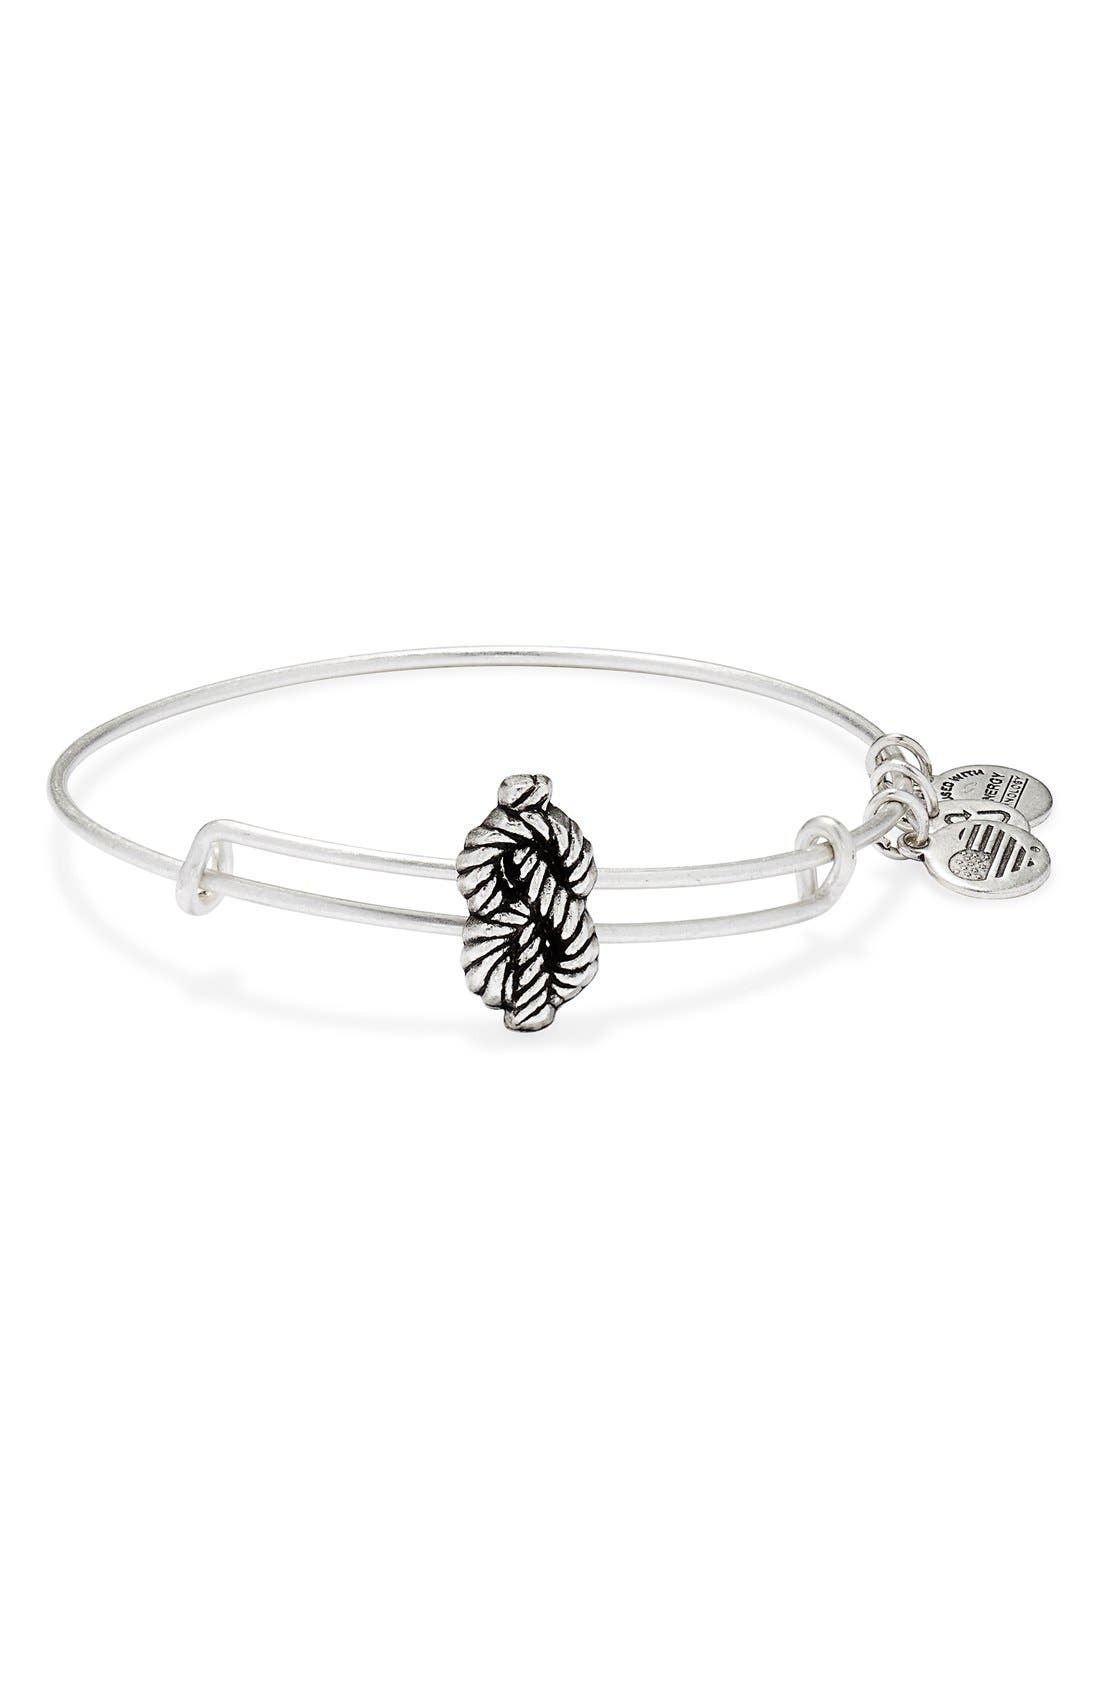 Alternate Image 1 Selected - Alex and Ani Expandable Sailor's Knot Bangle